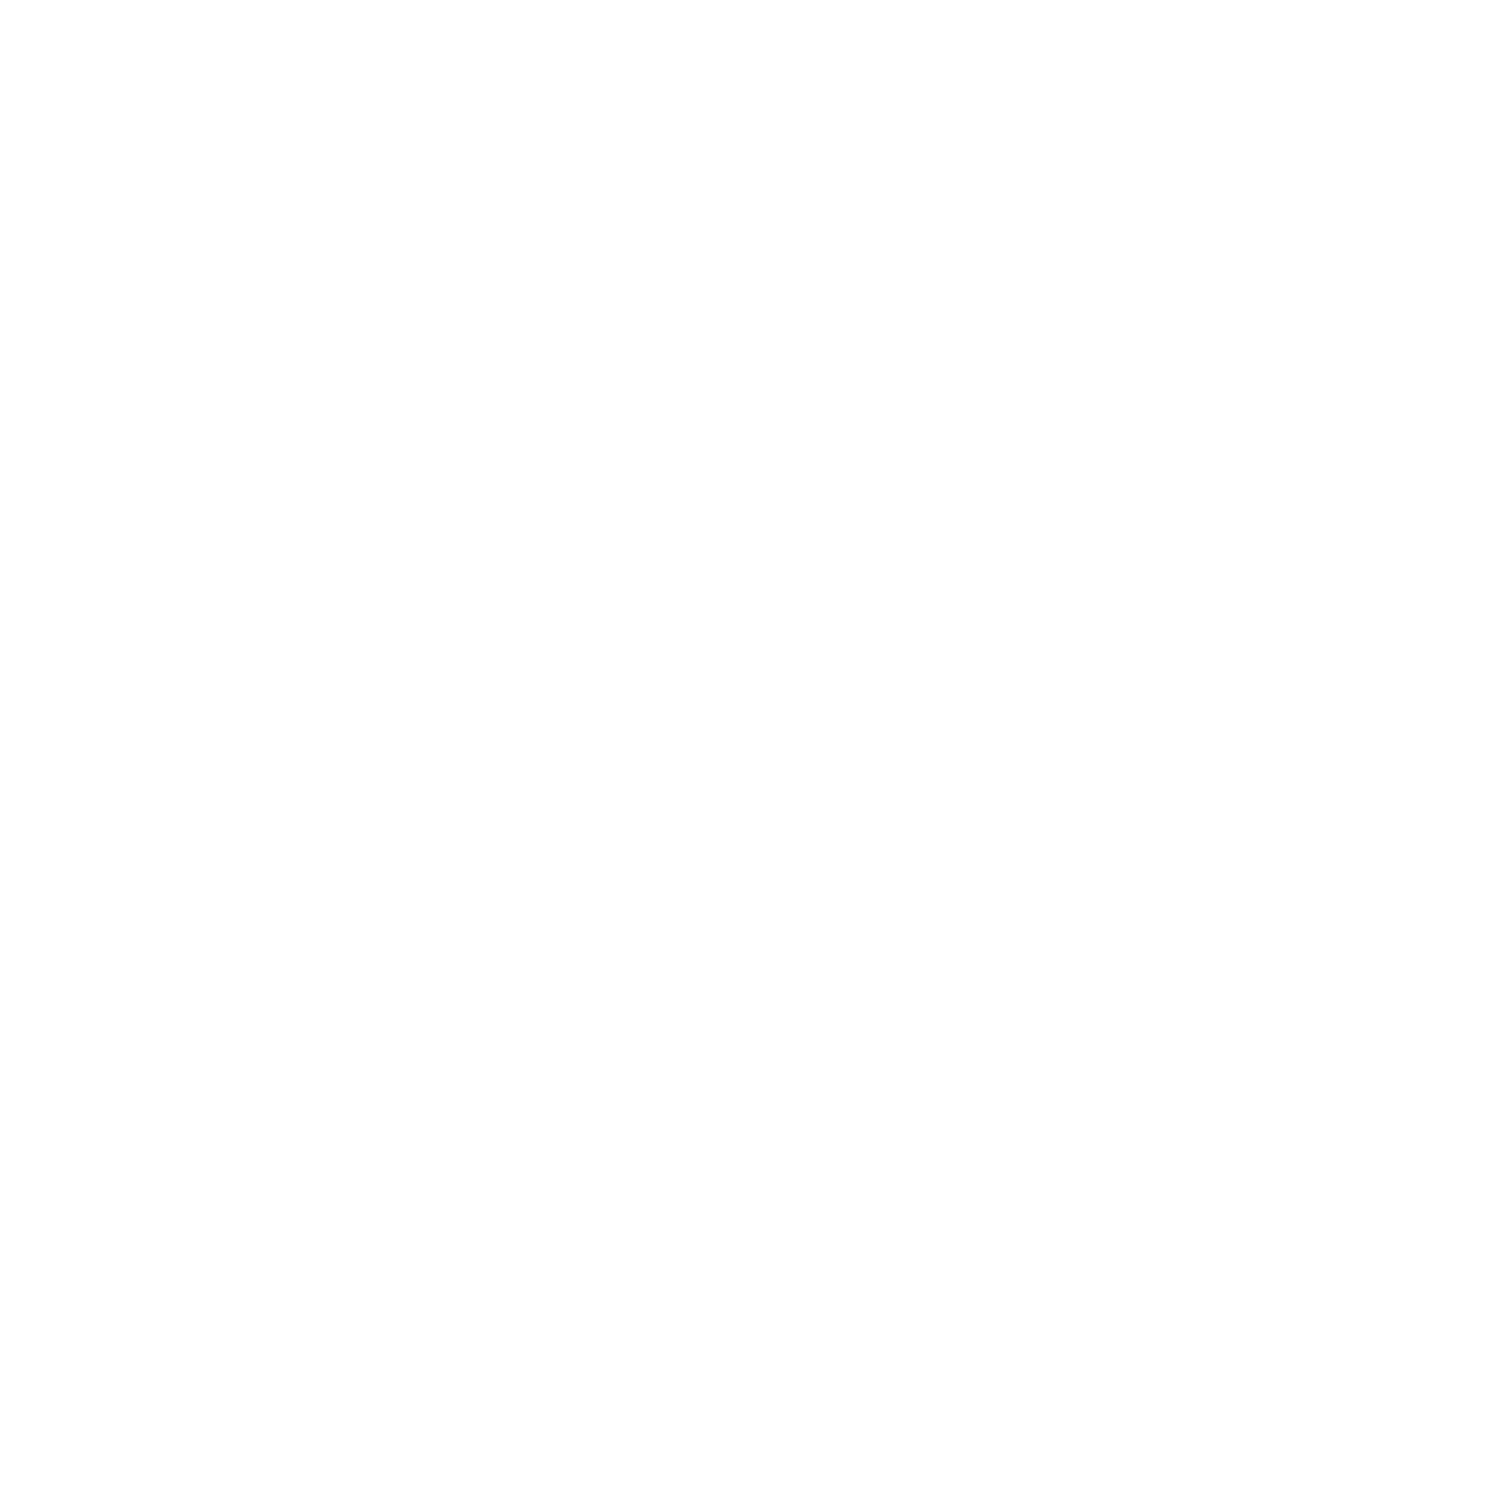 The Downtown Abilene Walking Tour